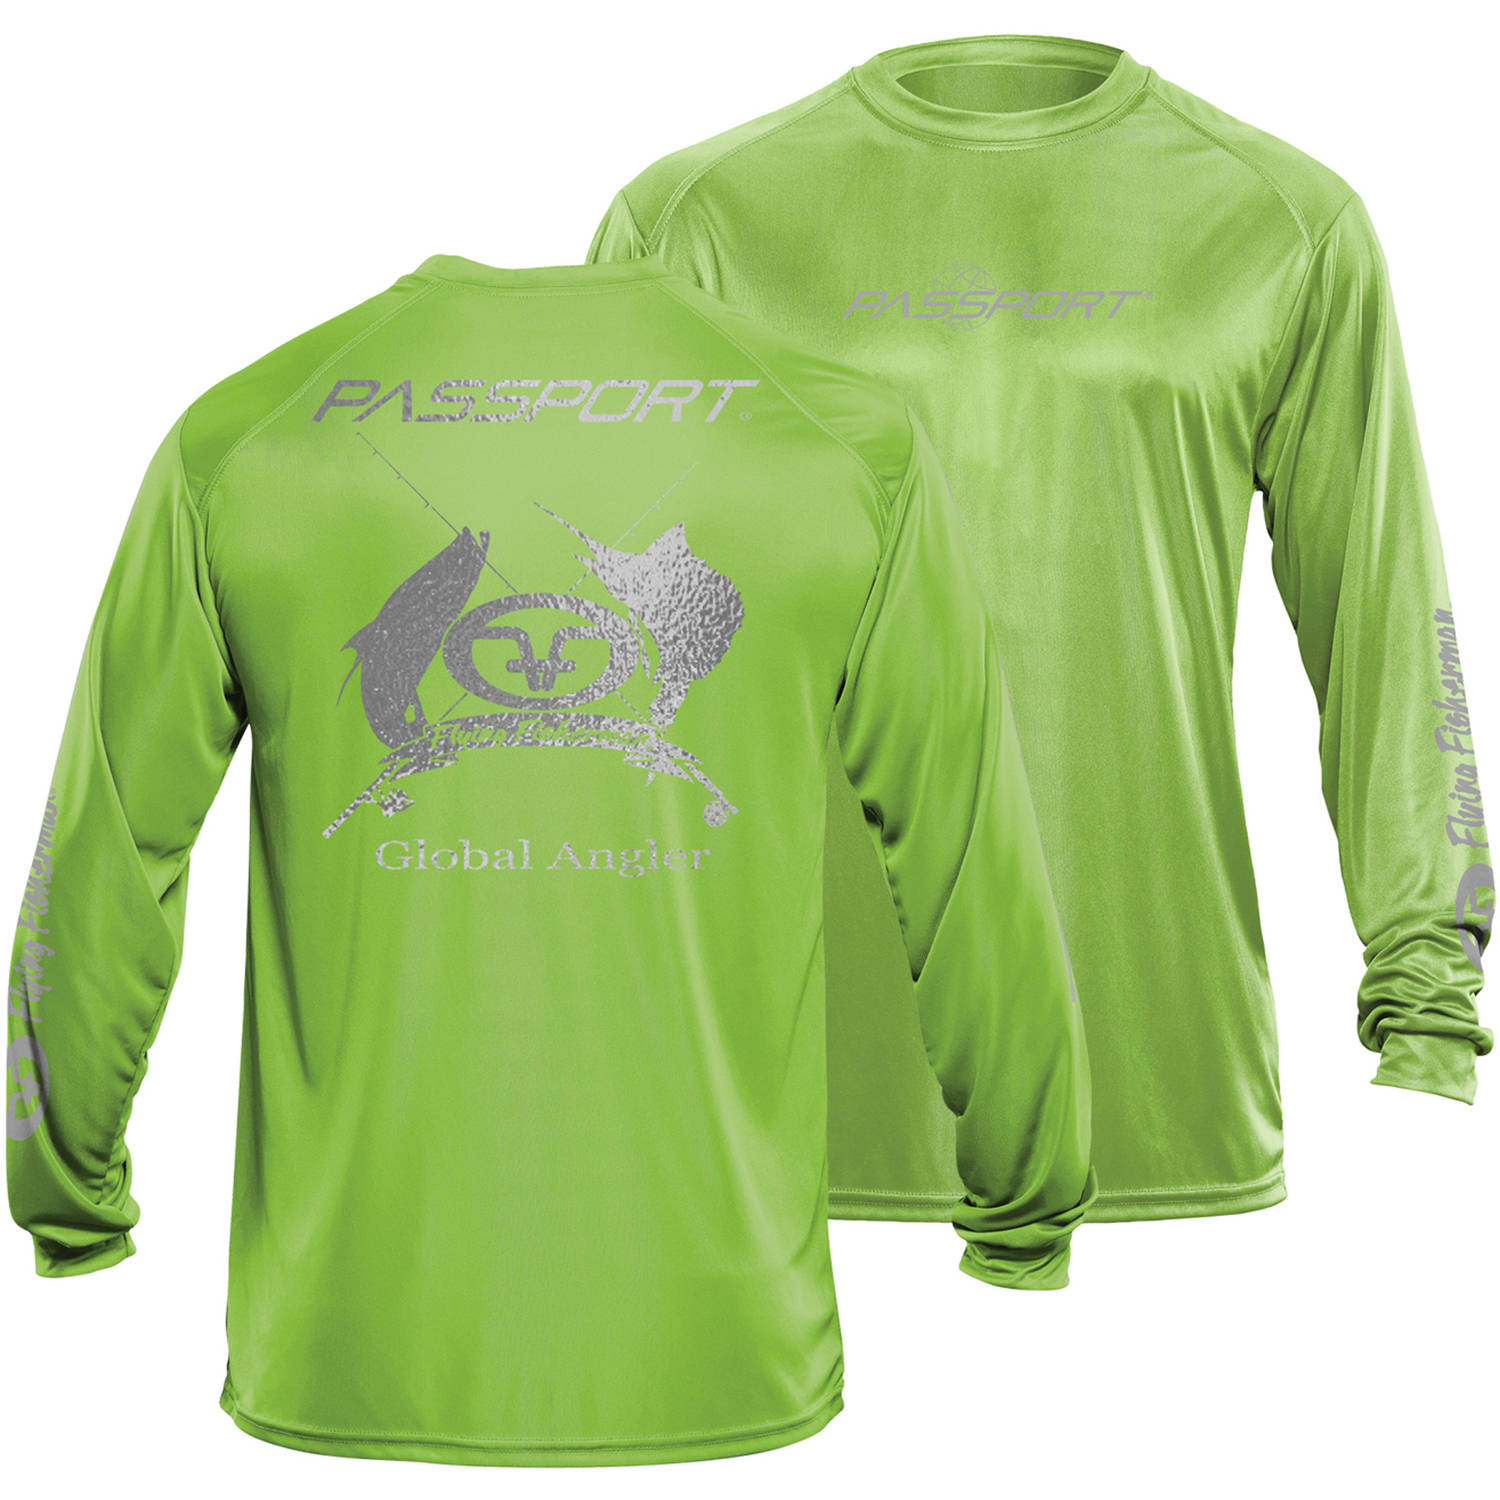 Flying Fisherman Passport L S Performance Tee, Lime, L by Flying Fisherman